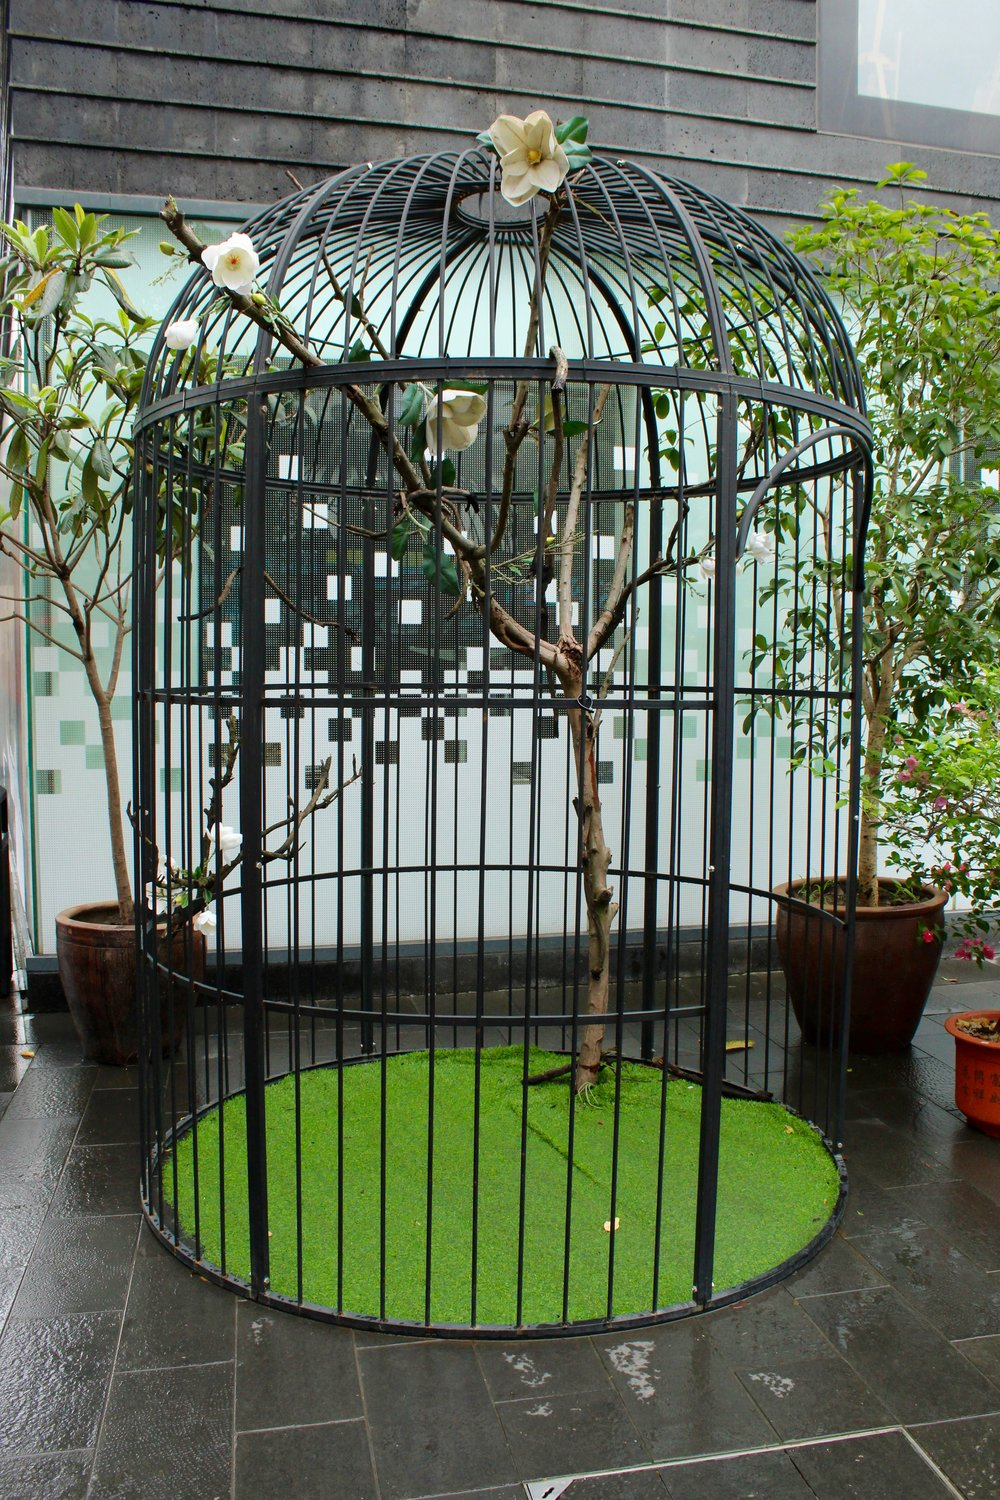 A human sized bird cage located at the entrance to the Old town in Zhujiajiao.